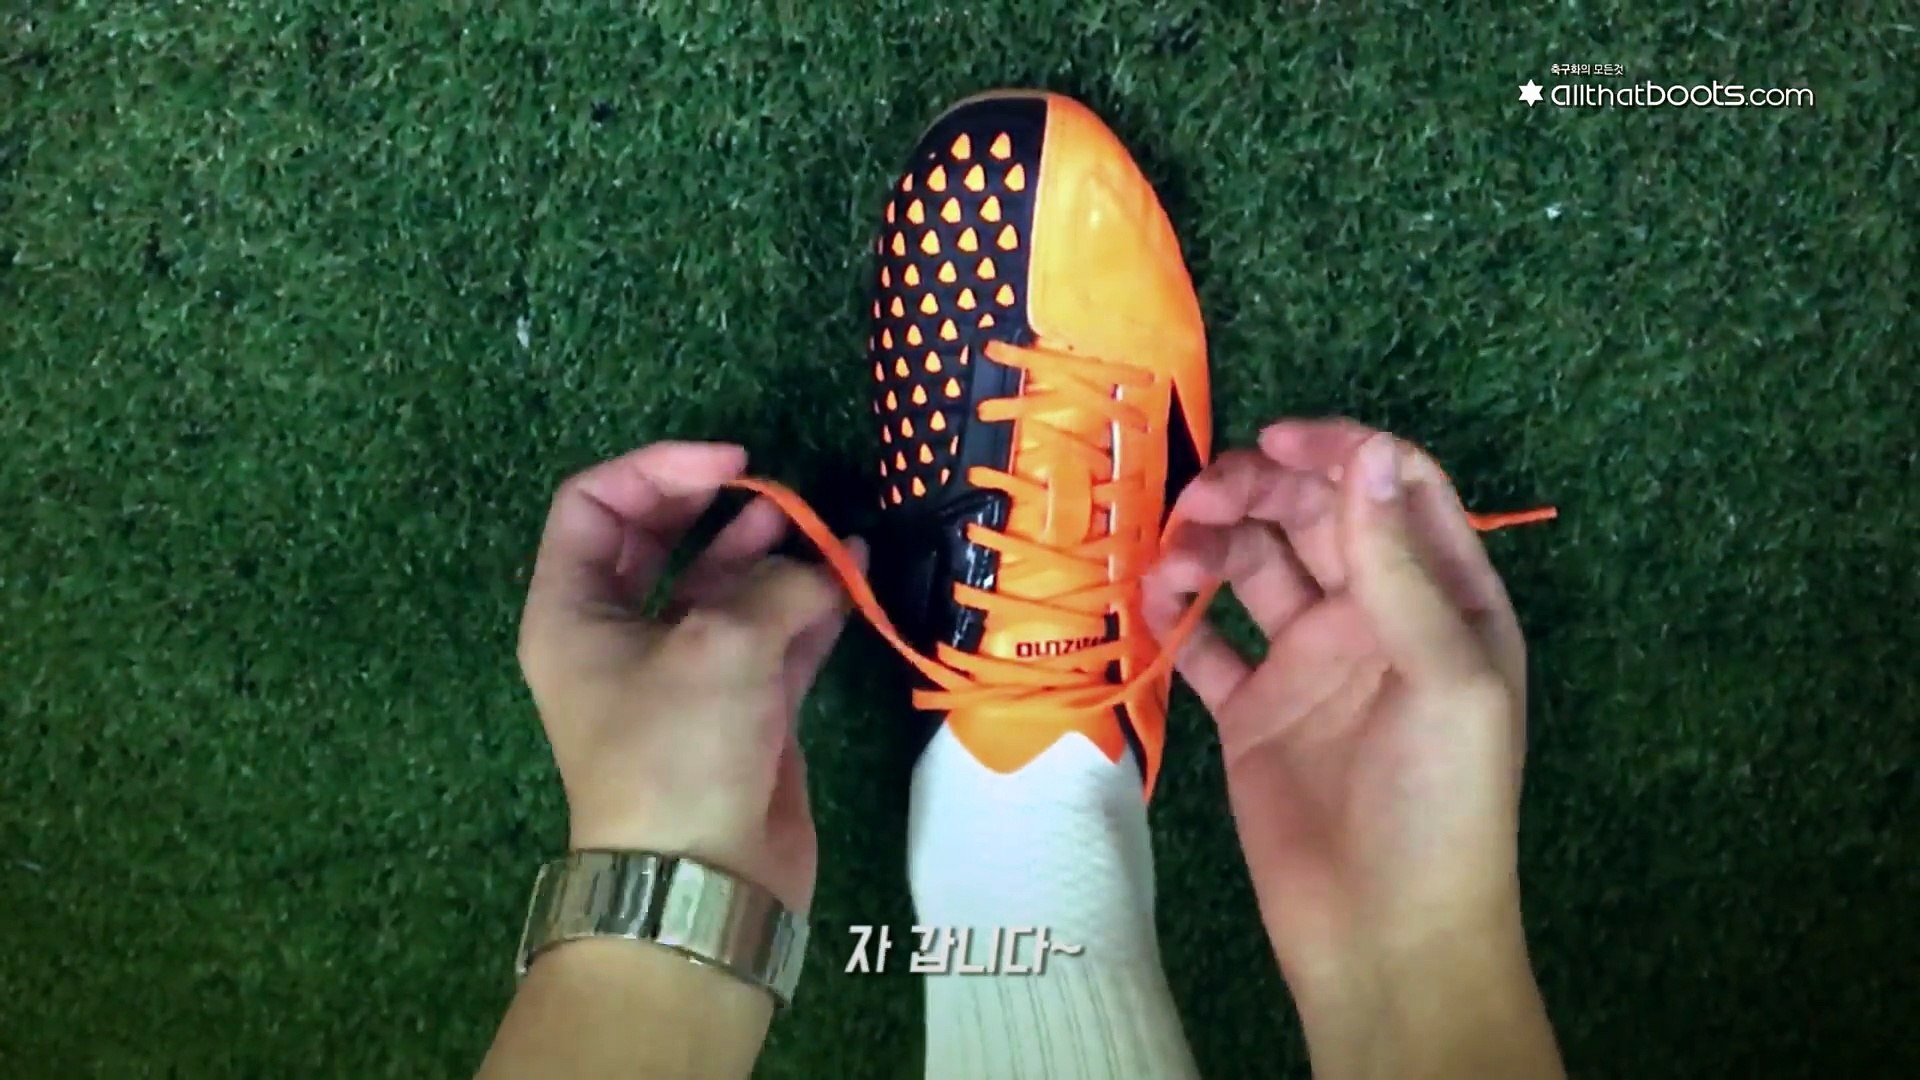 [Tip] 1초만에 축구화 끈 묶기 꿀팁 (How to tie a Shoe Lace in 1 Second_올댓부츠,allthatboots)